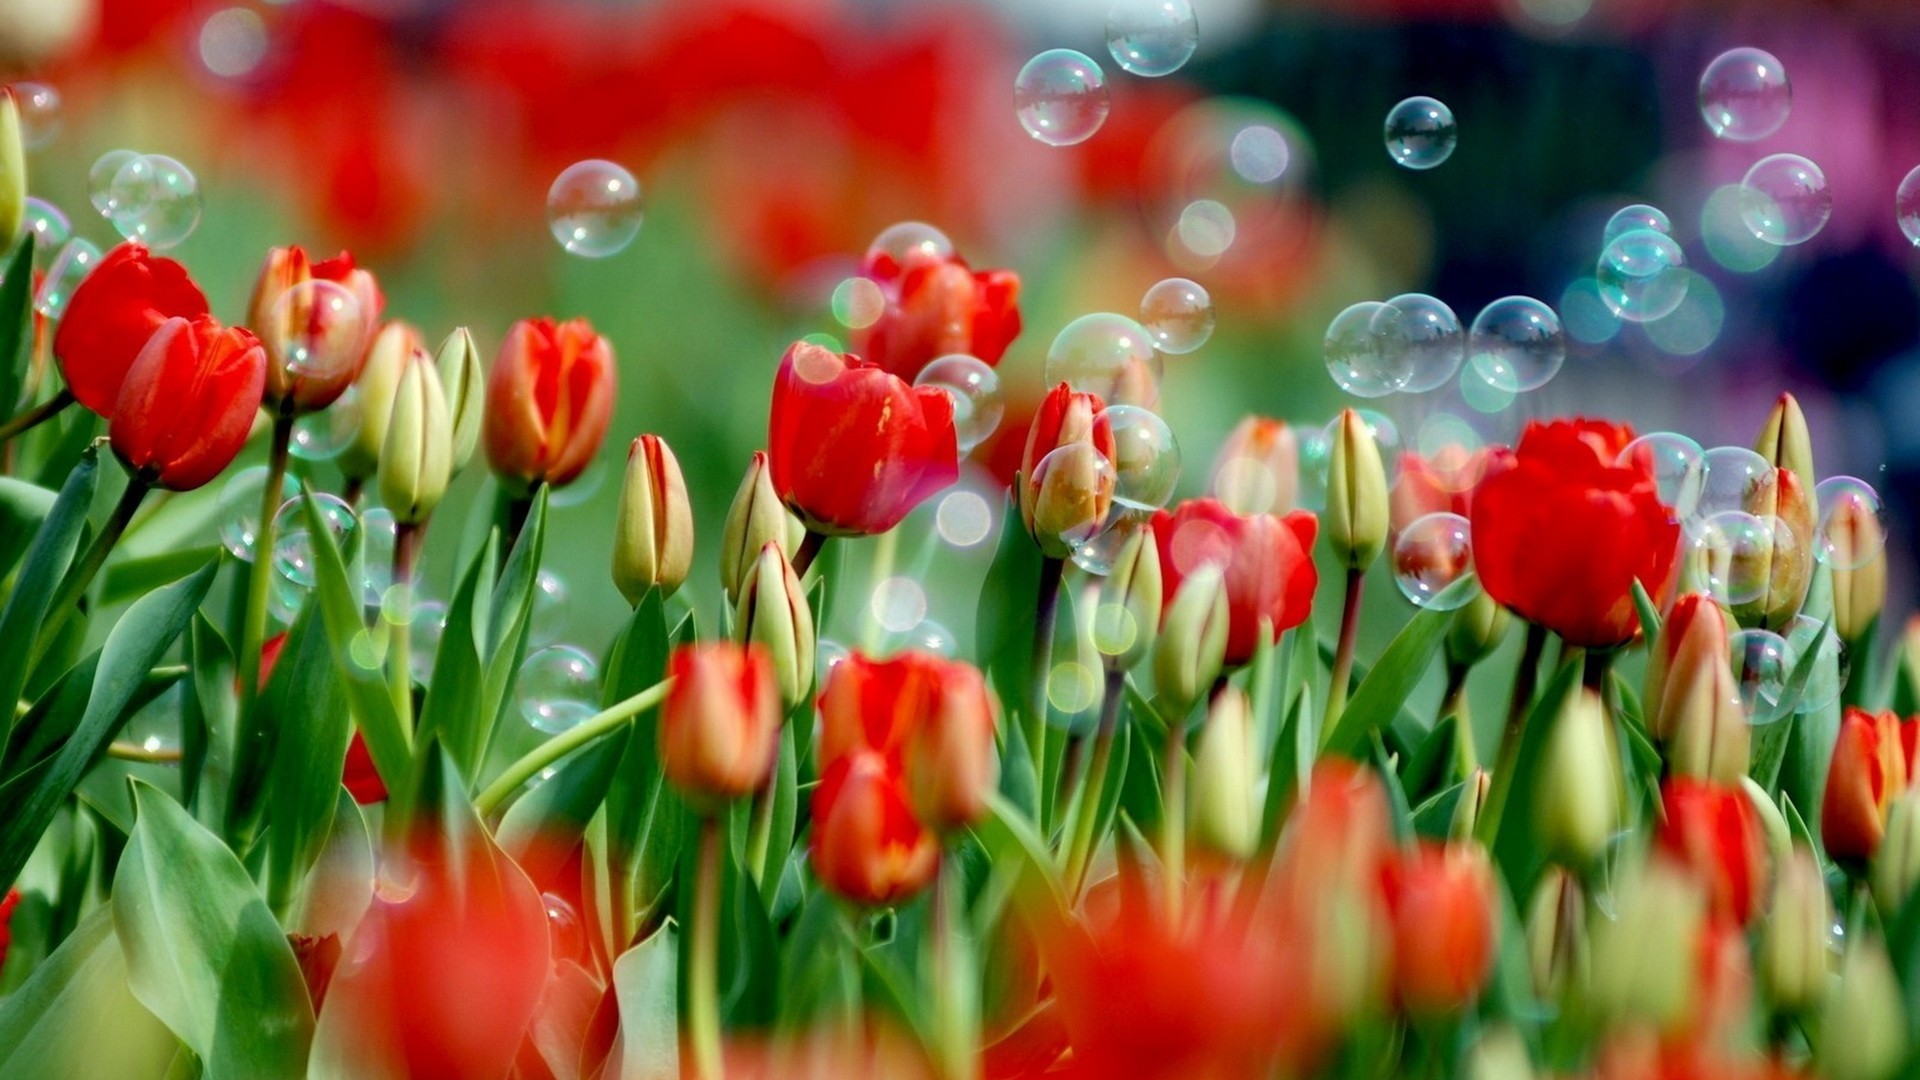 Tulips background wallpaper 70 images 1920x1080 spring tulips hd 300x168 spring hd wallpapers izmirmasajfo